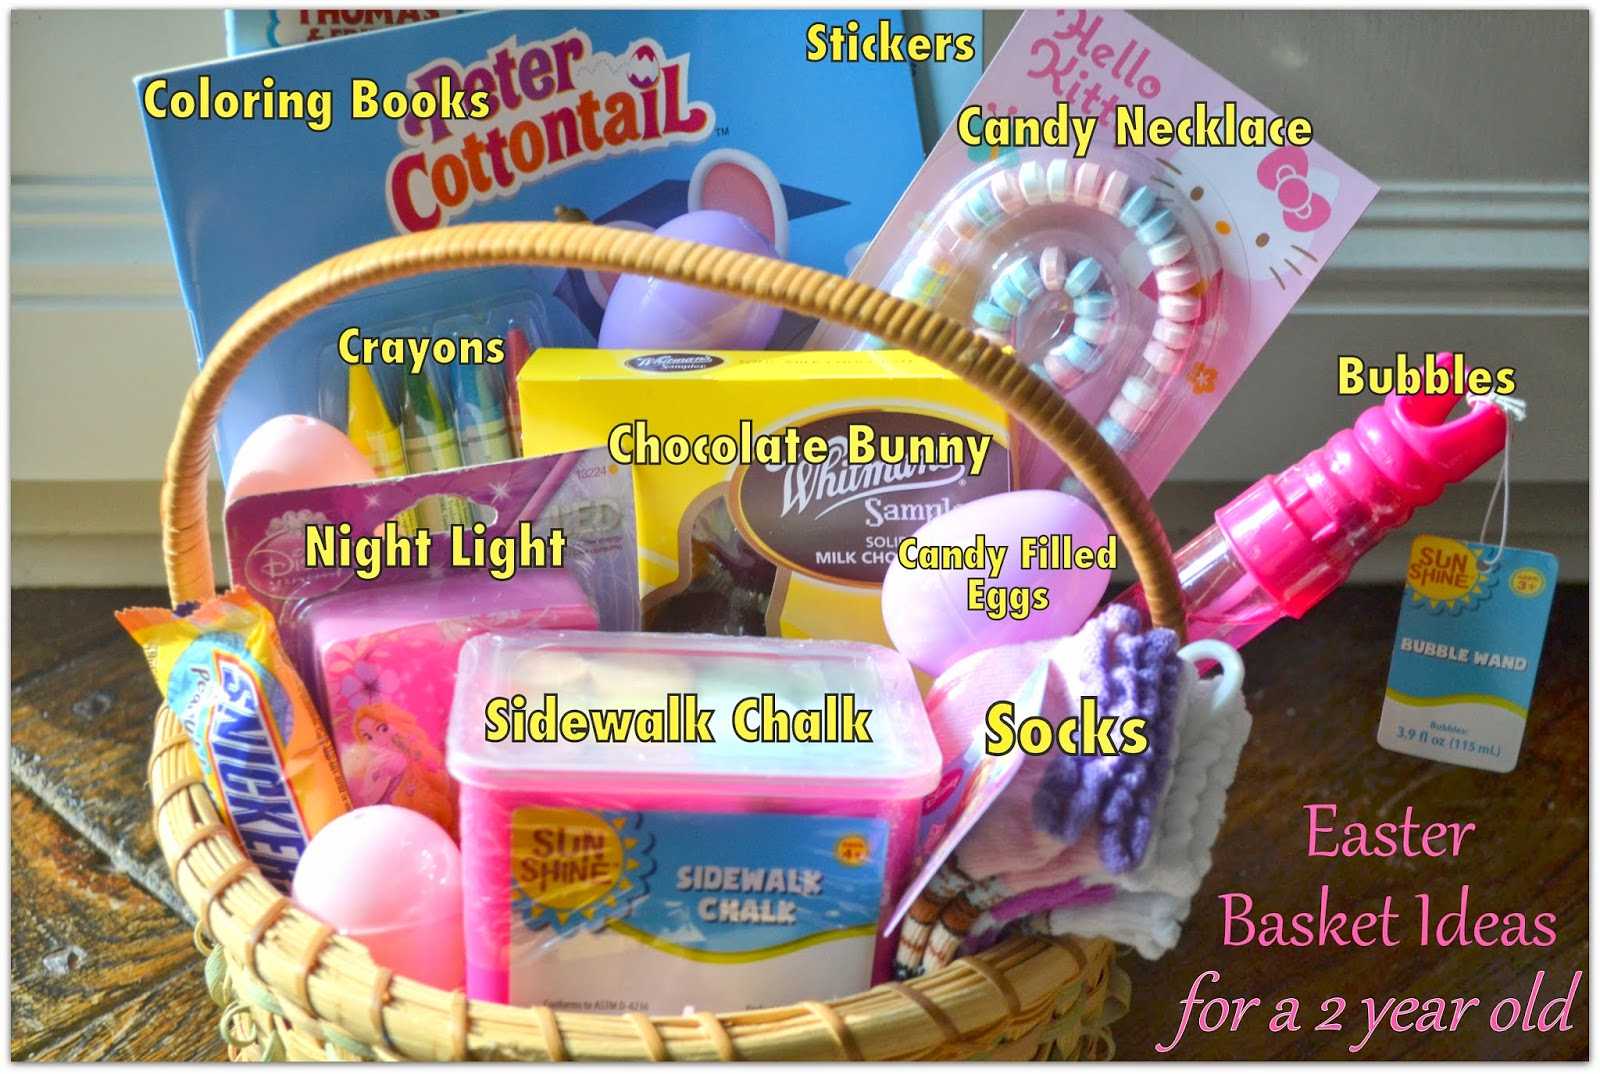 Easter basket ideas for a two year old logic laughter easter basket ideas for a two year old saturday april 19 2014 negle Choice Image